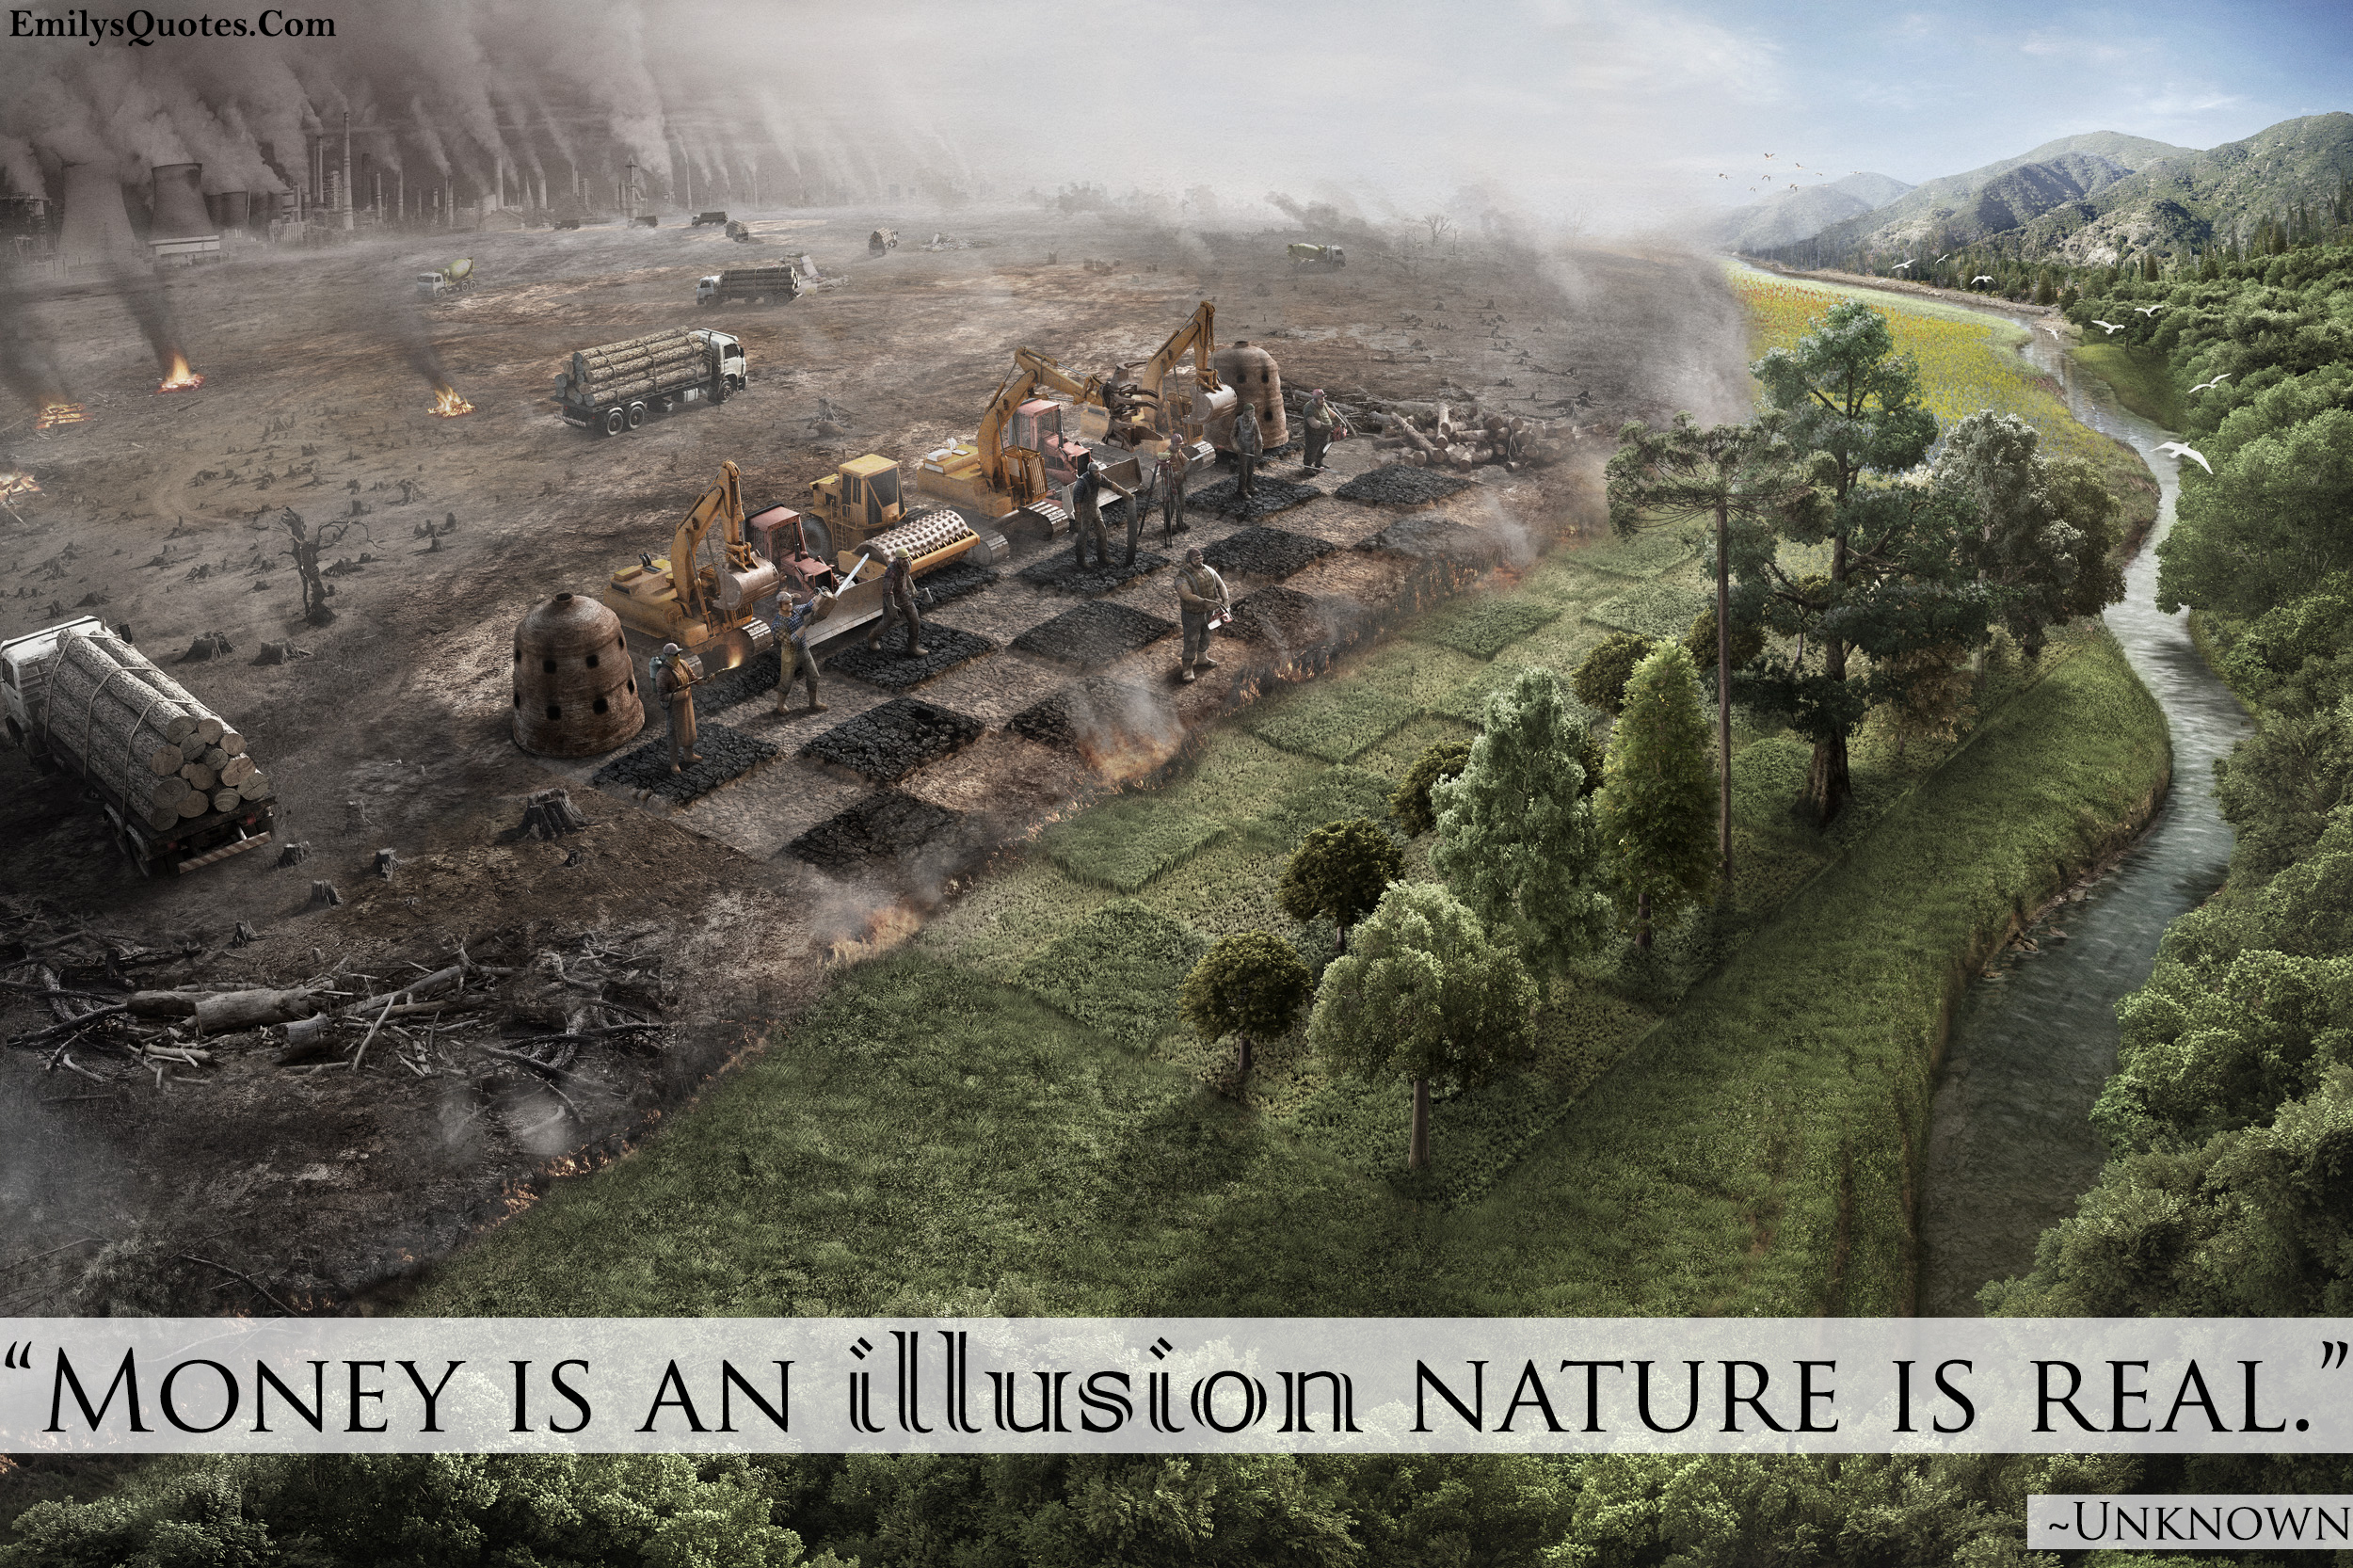 money is an illusion nature is real popular